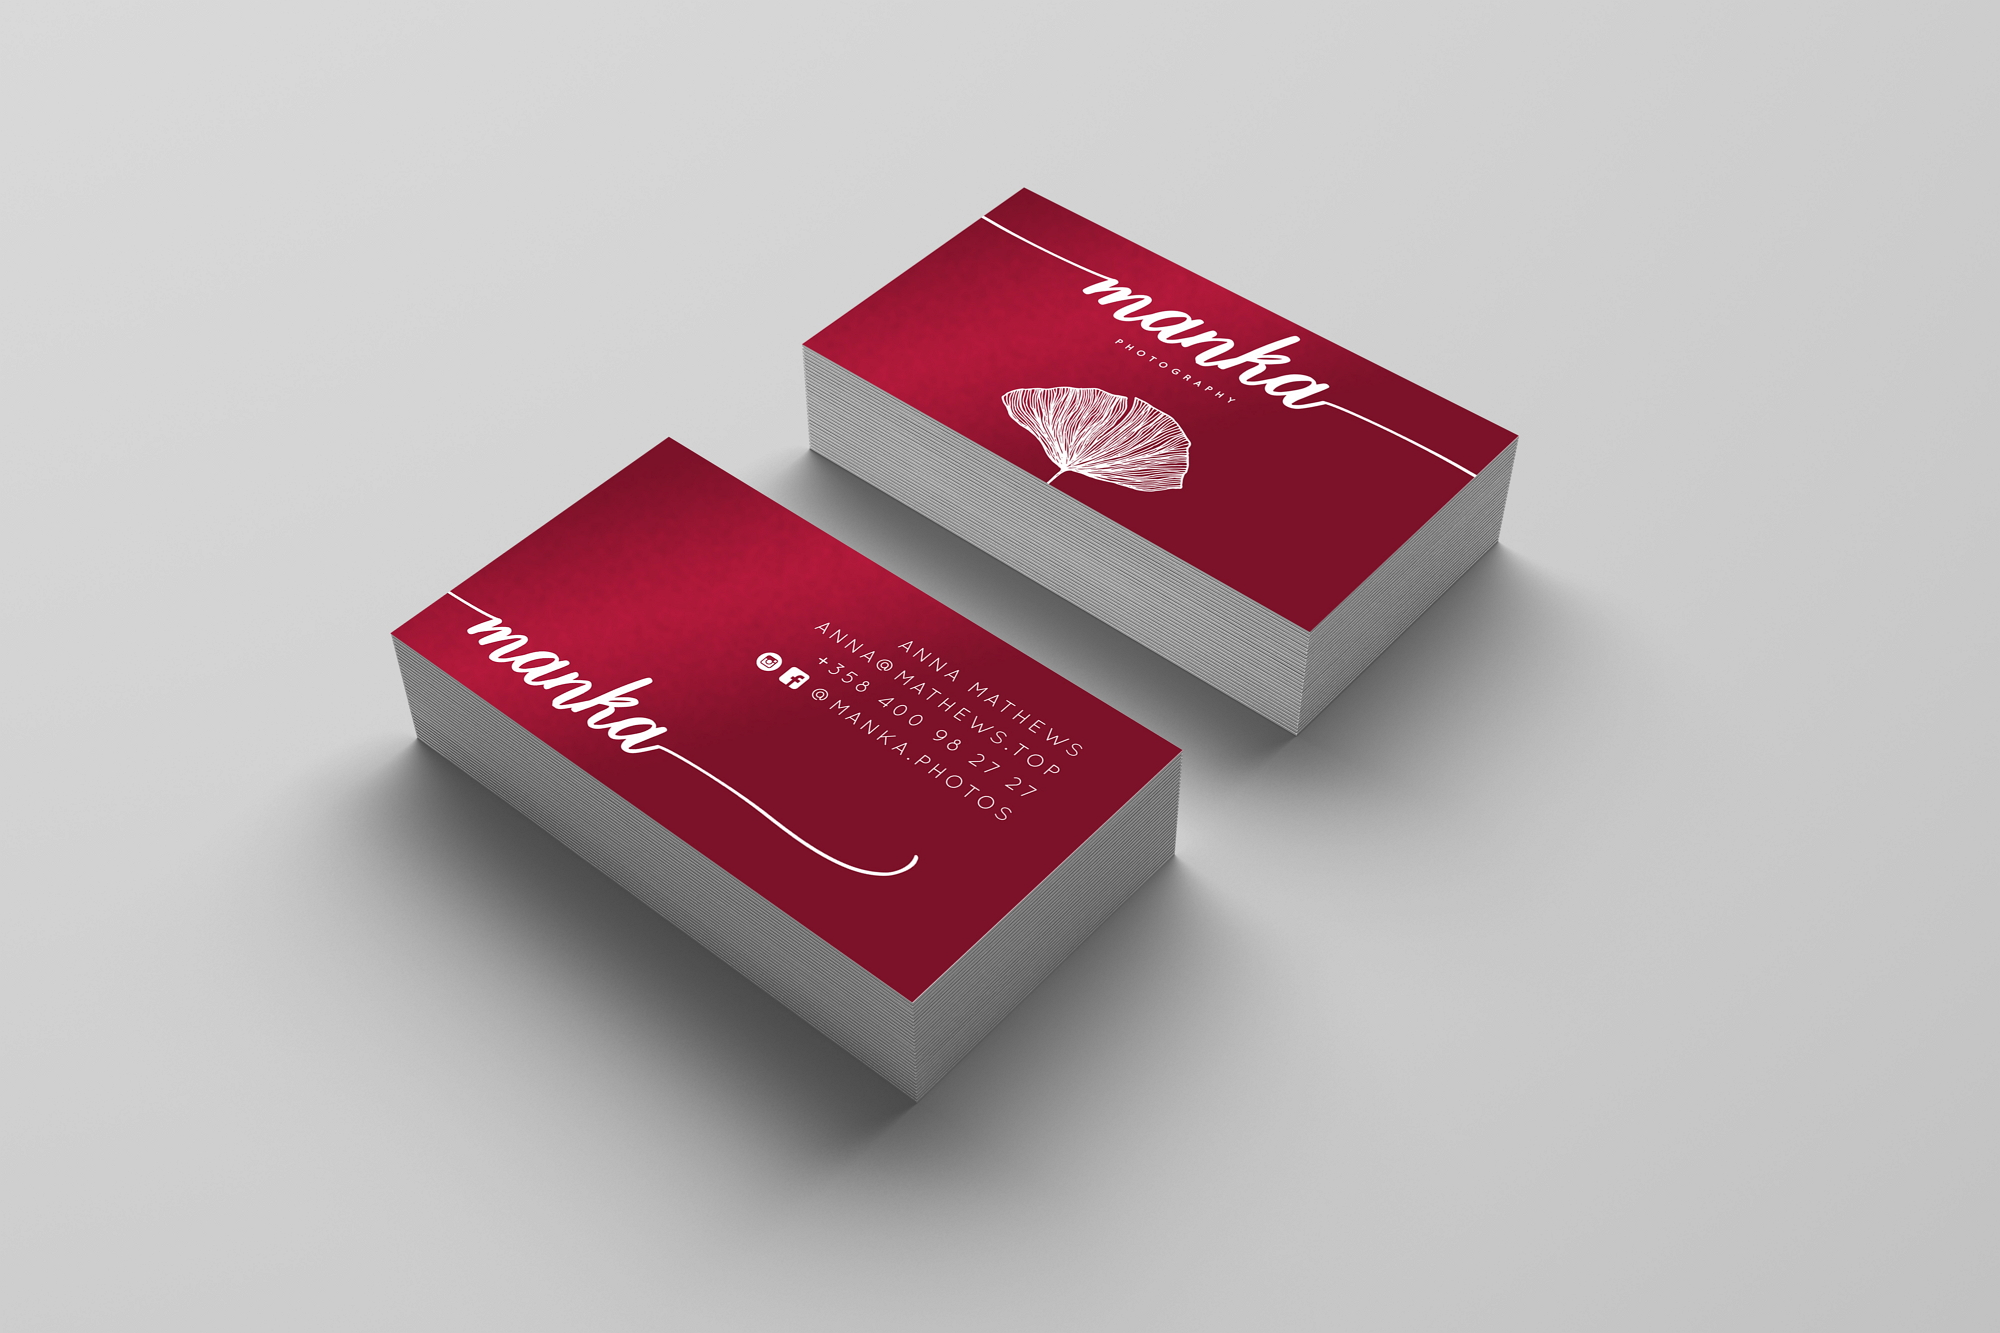 Item botanical business card design for Manka photography - Crocus ...